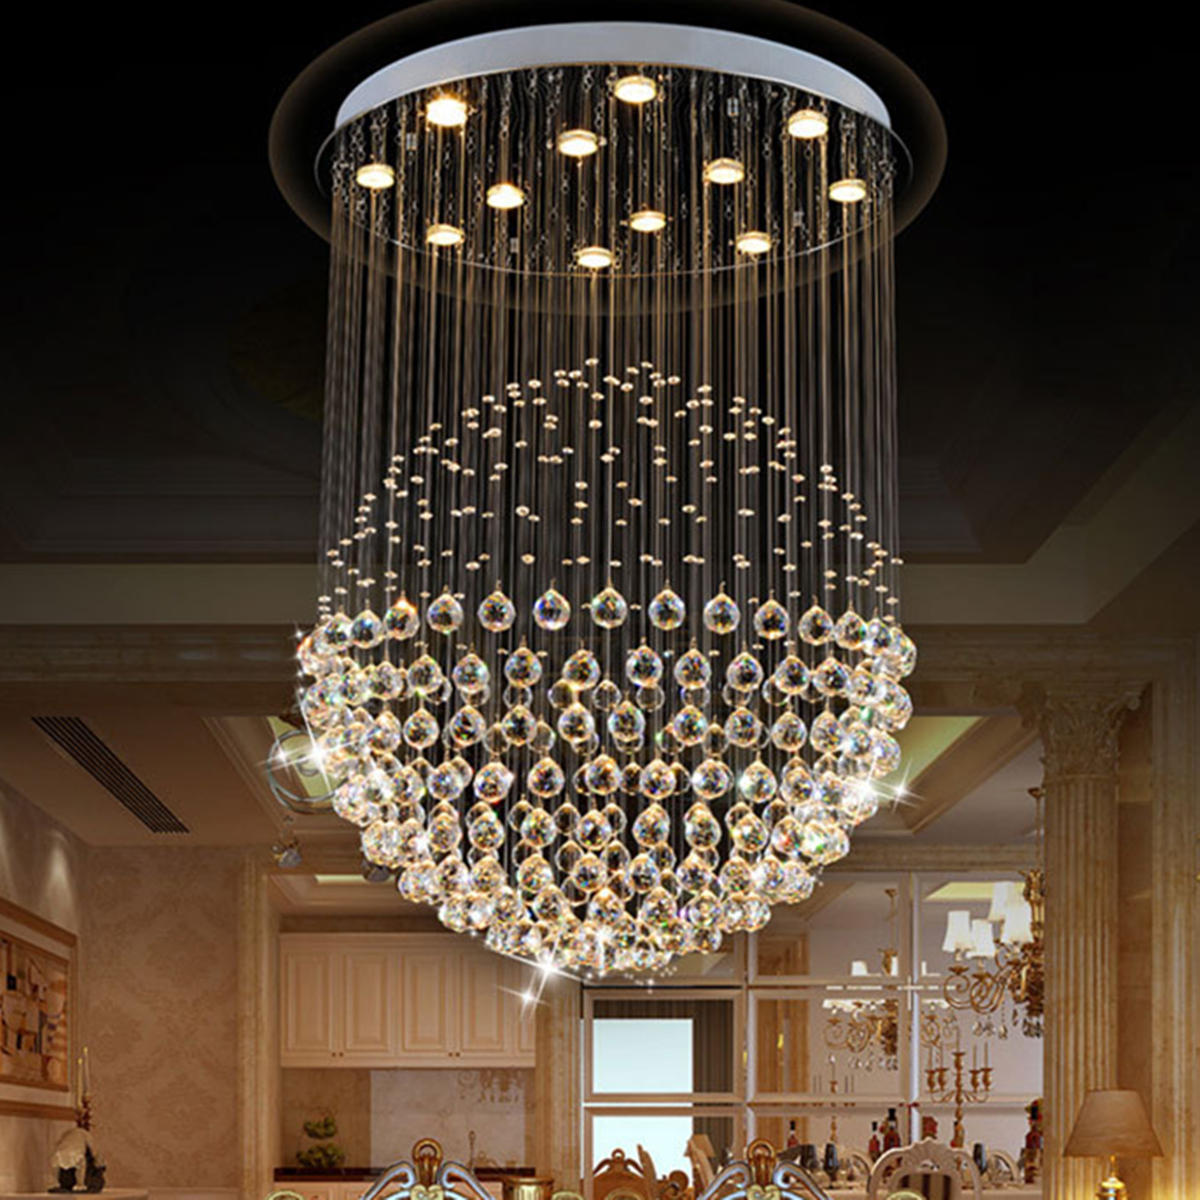 Capable New Led Chandeliers For Living Room Bedroom Dining Room Acrylic Iron Body Interior Home Chandelier Lamp Fixtures Fine Workmanship Lights & Lighting